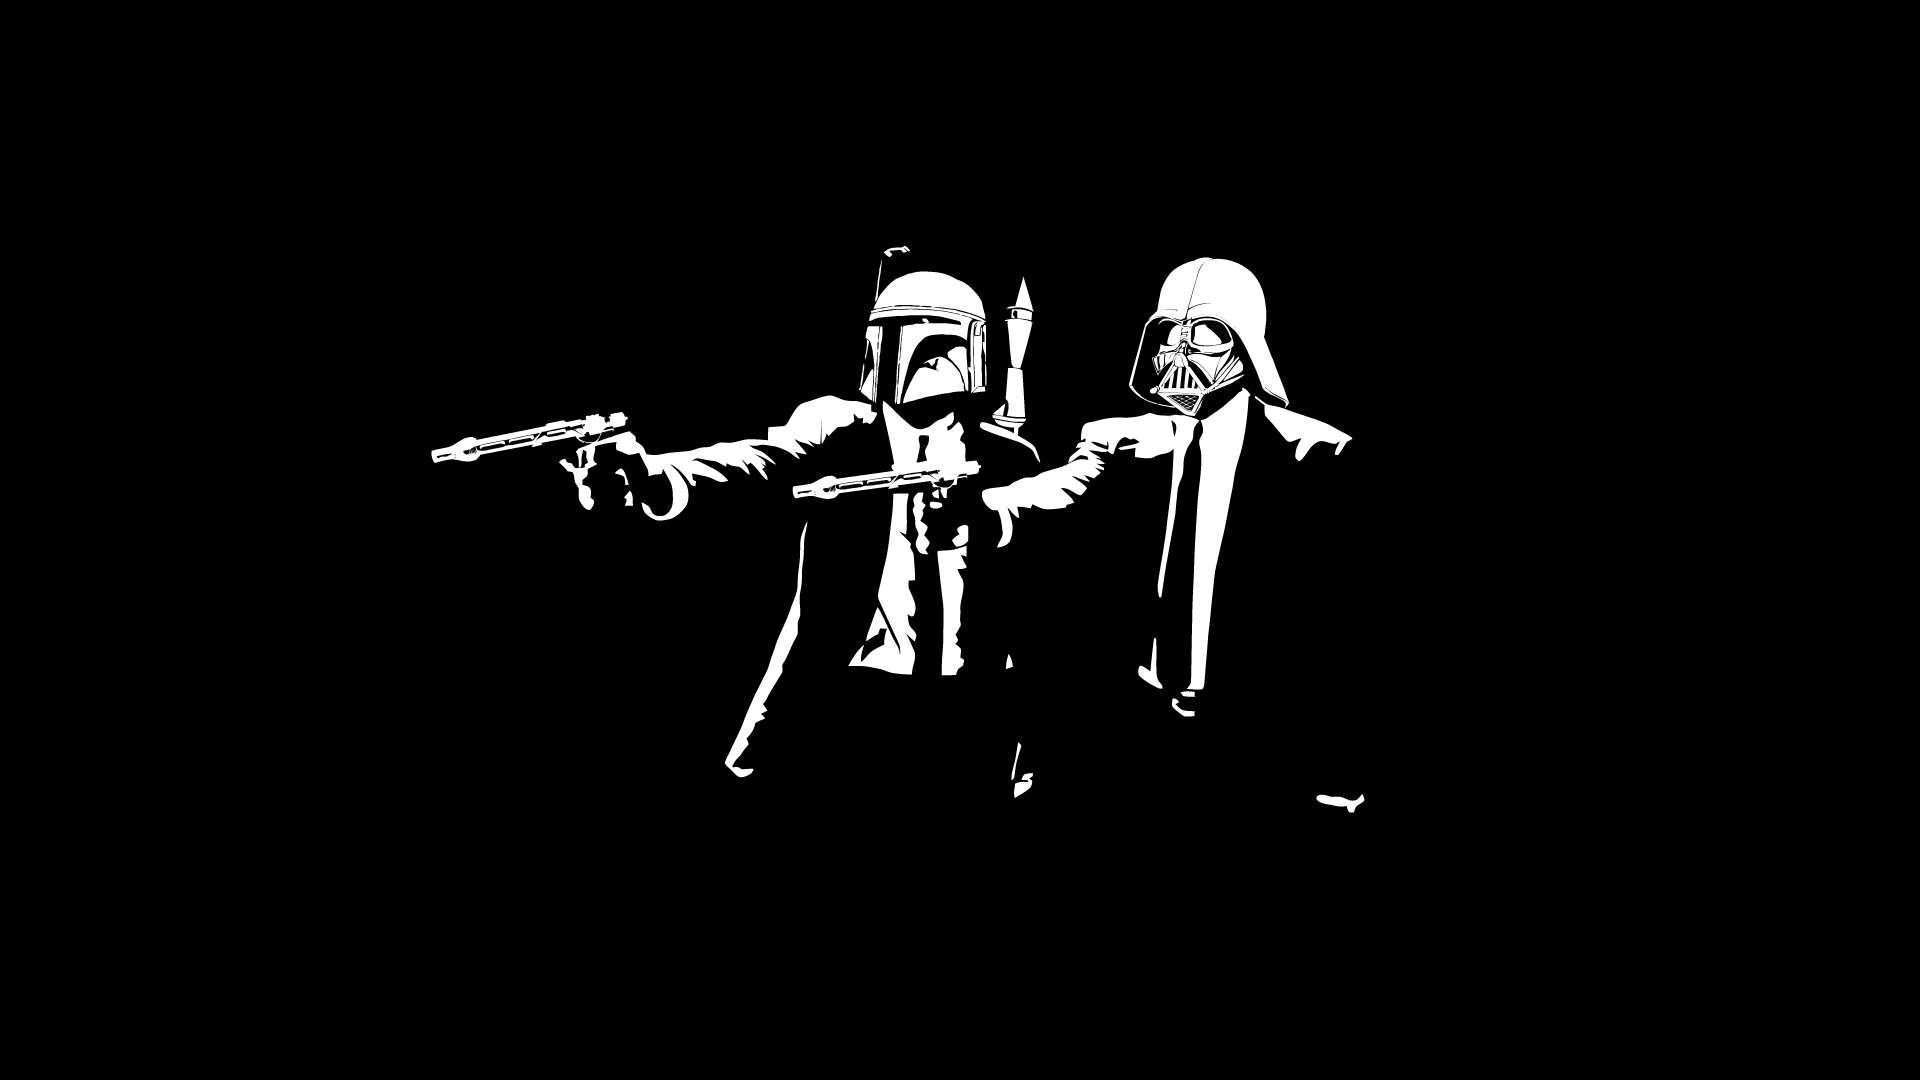 Pulp Fiction Star Wars Bounty Hunters Wallpaper by HD Wallpapers Daily